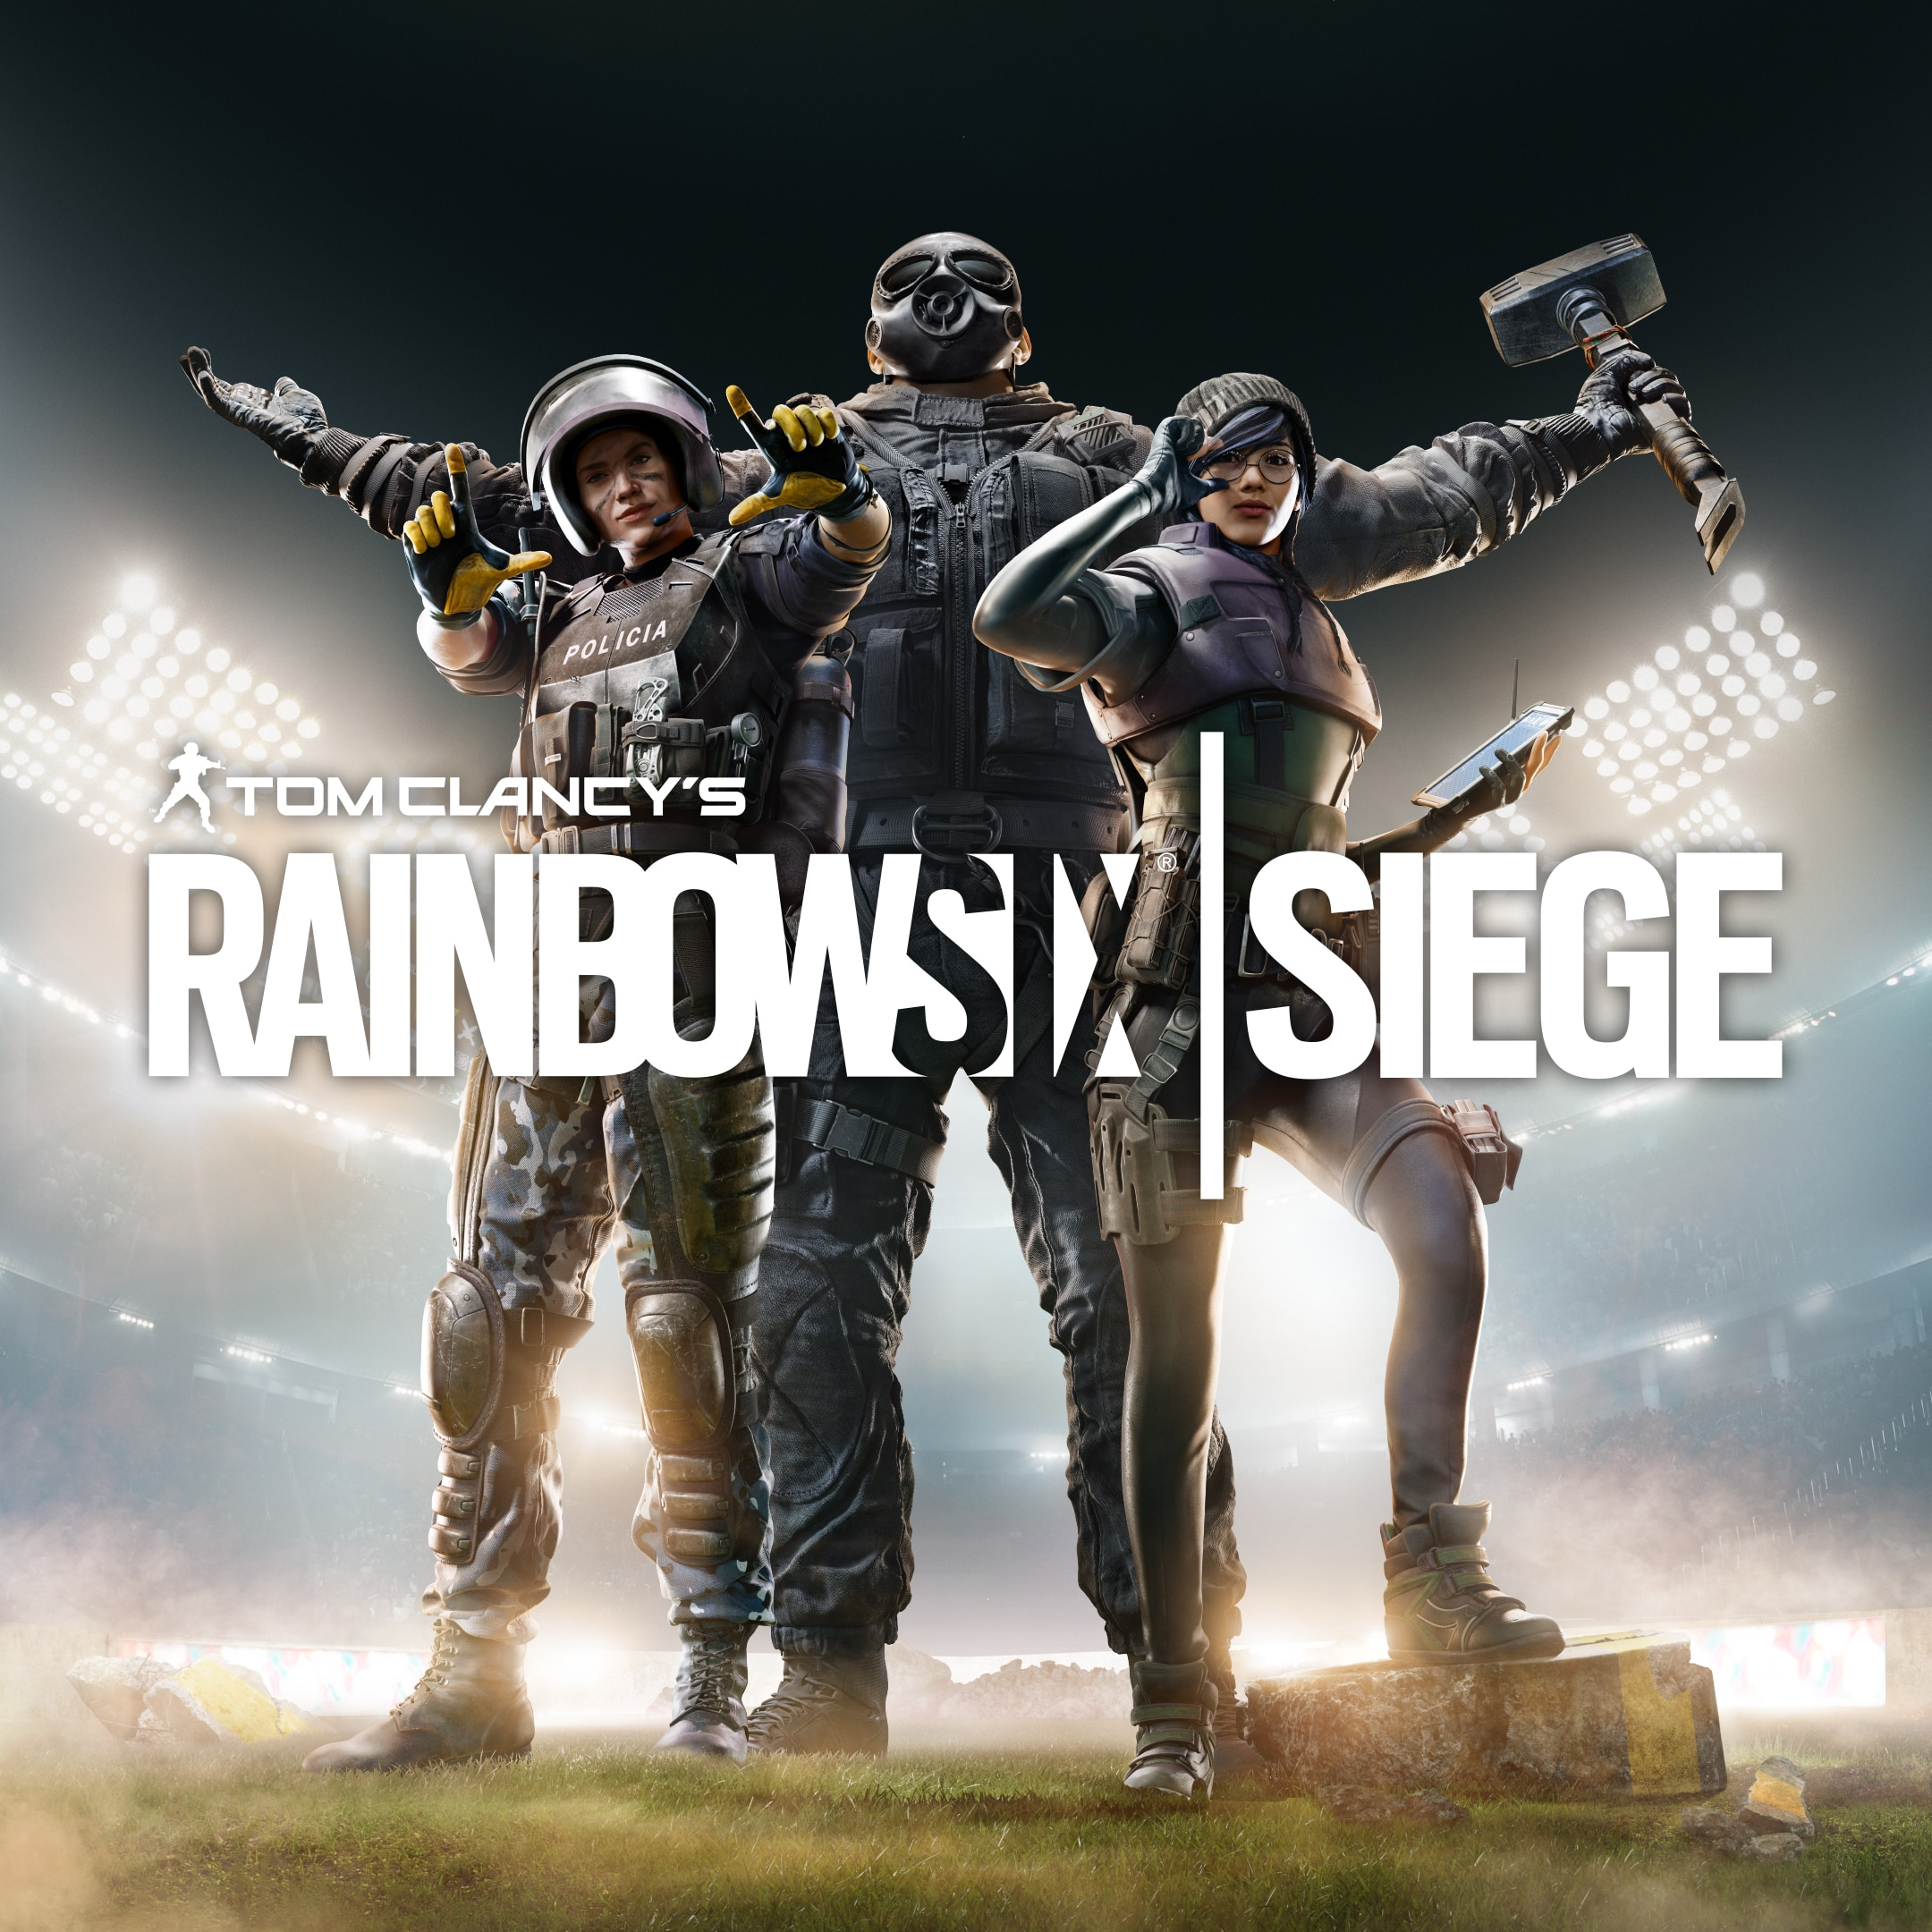 WM_GMA_Tom Clancy's Rainbow Six Siege Add-ons